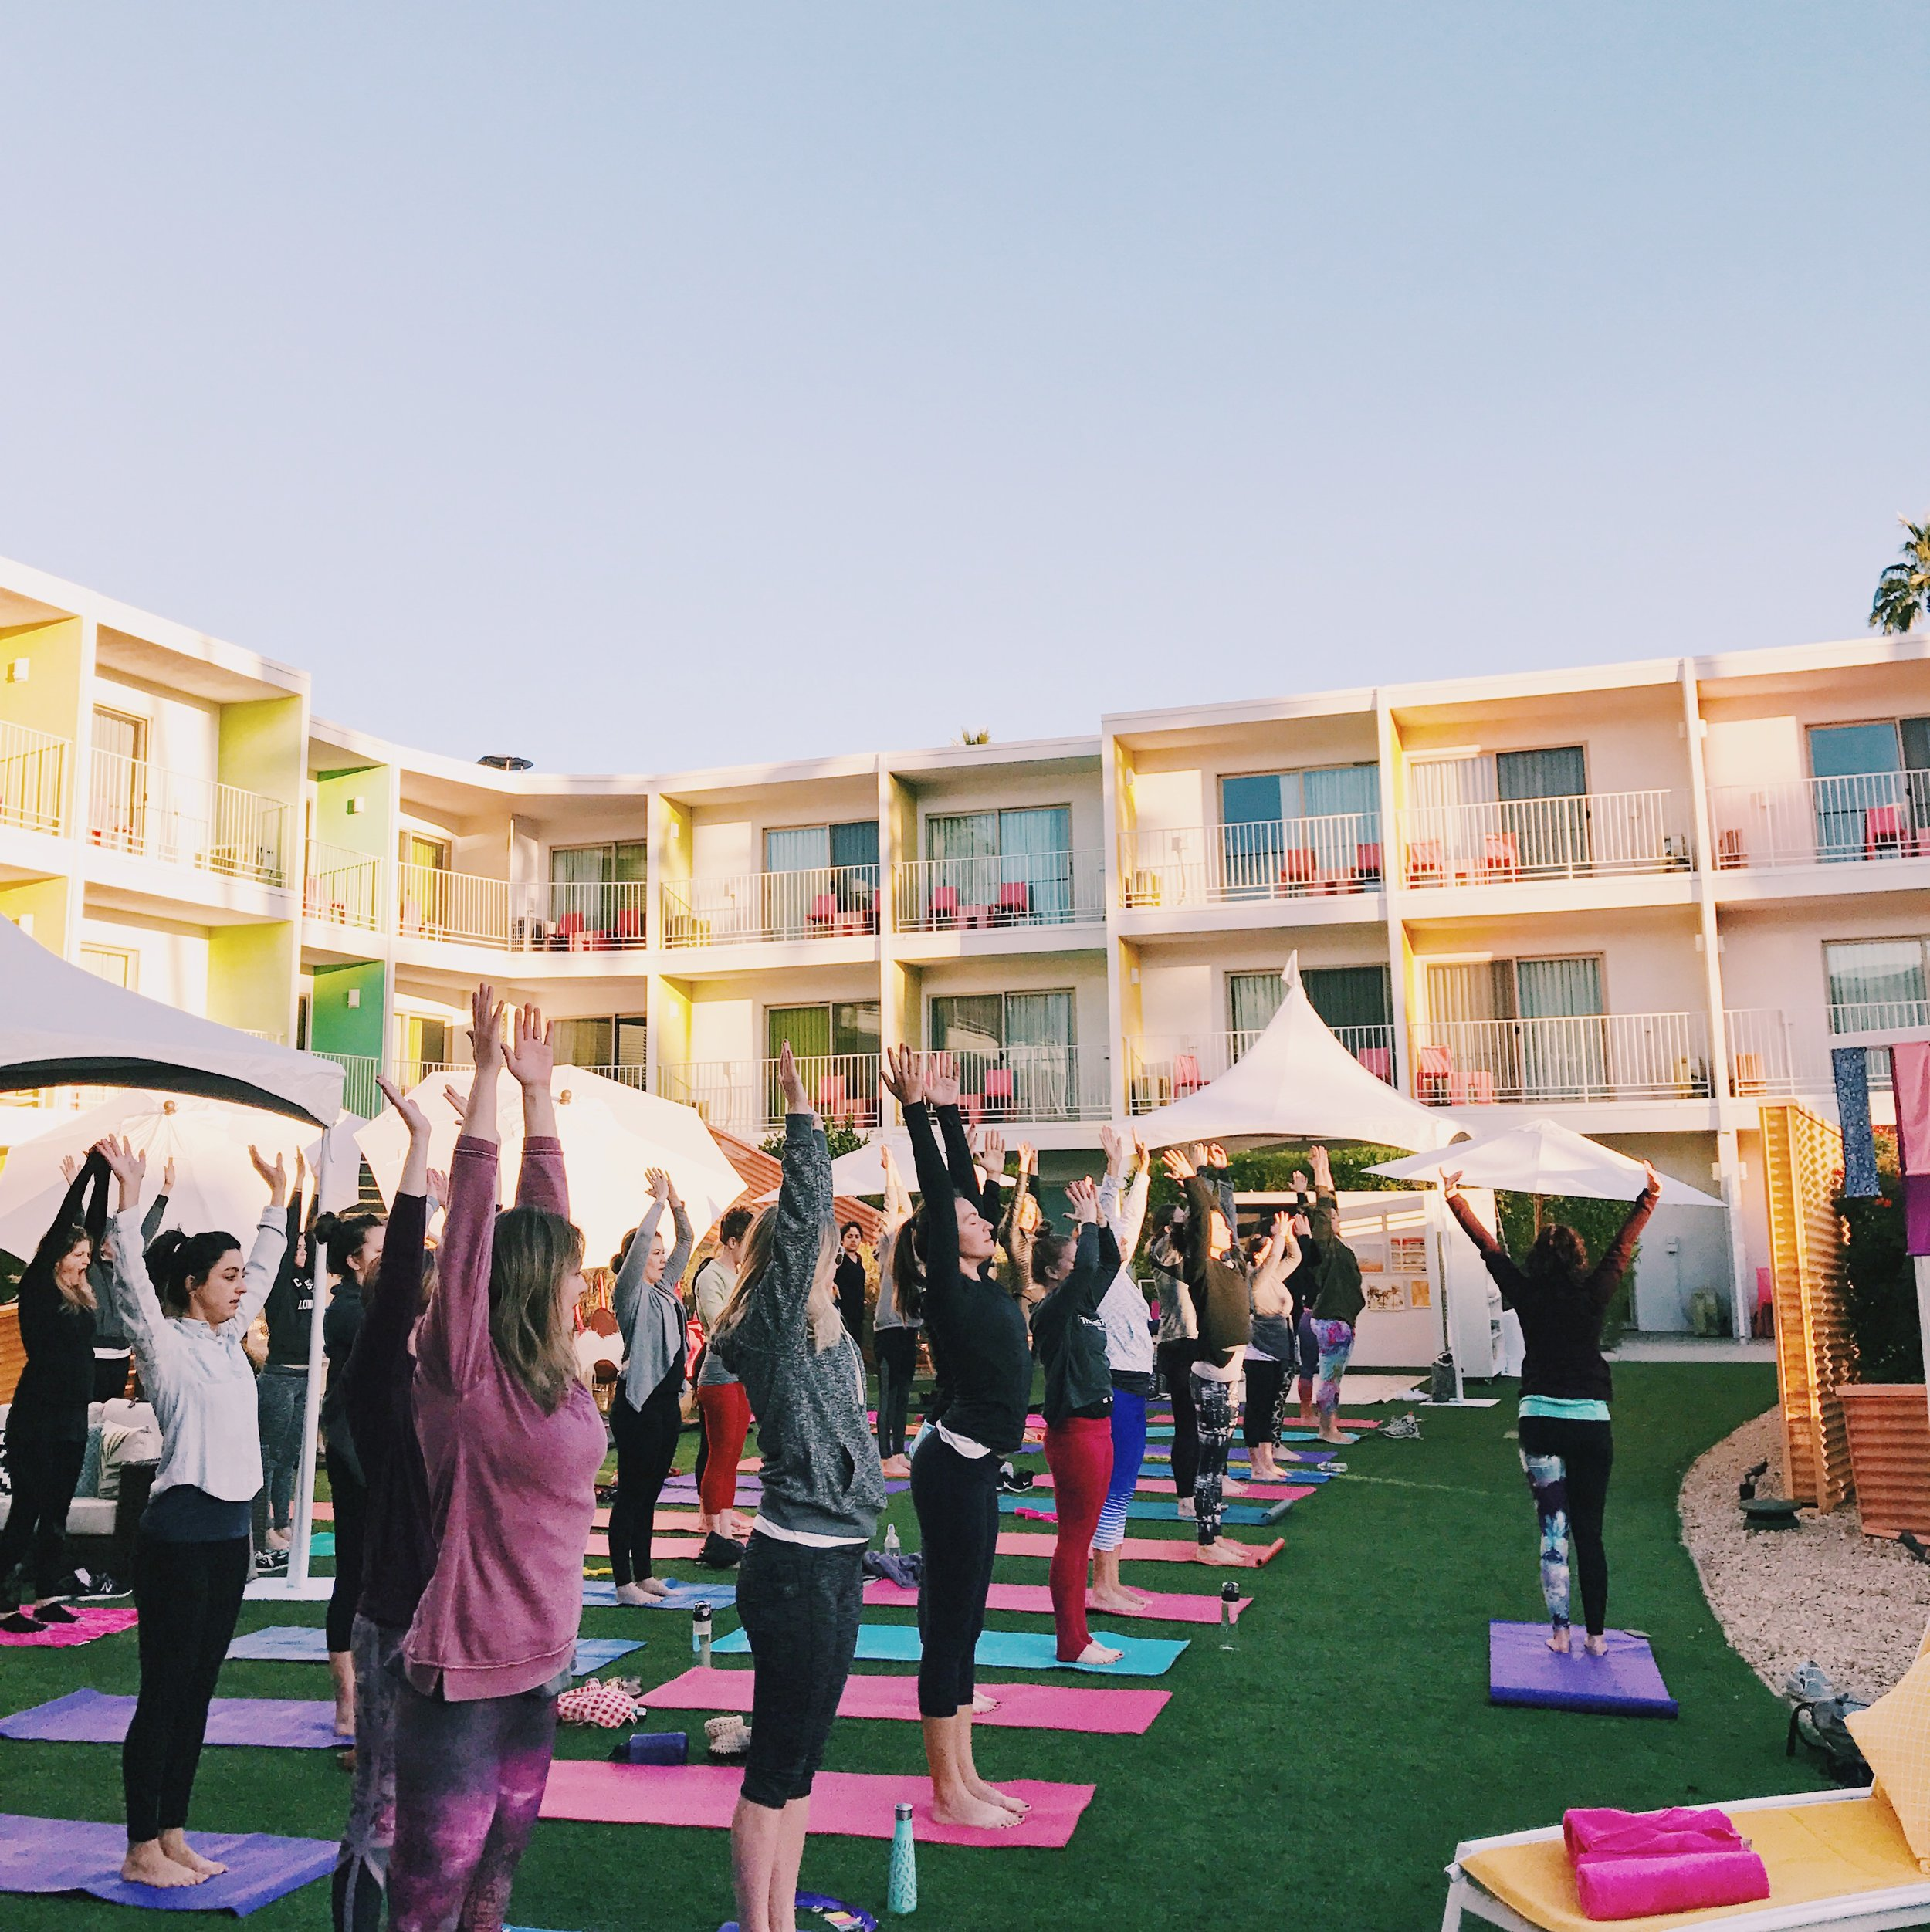 Yoga by the pool, followed by healthy smoothies sponsored by Vitamix. #yesplease